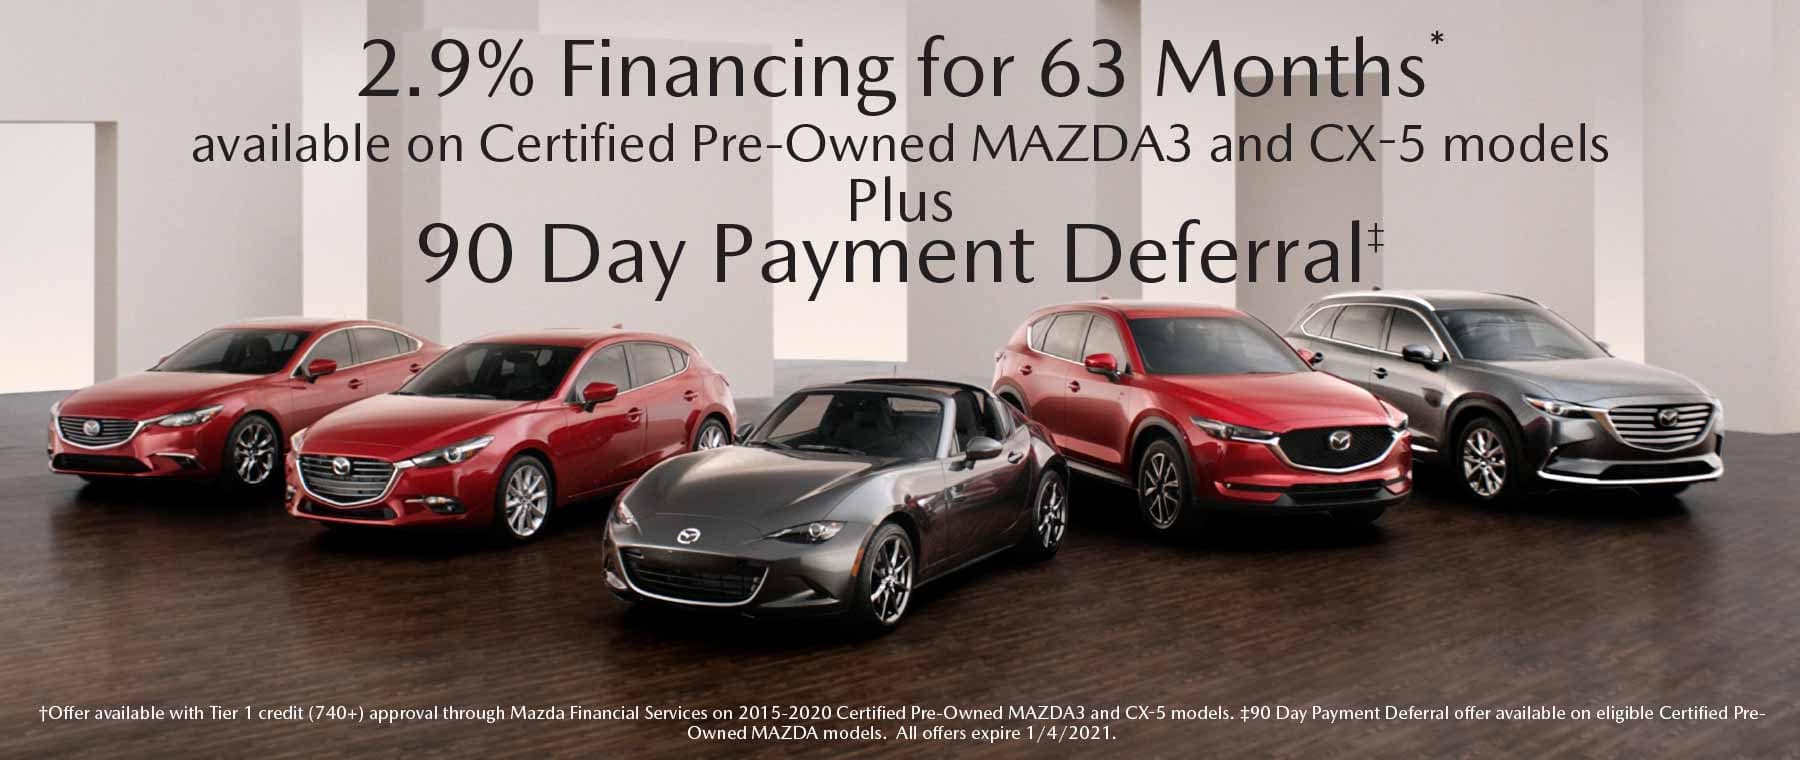 CPO APR Special Offer Garden City Mazda NY